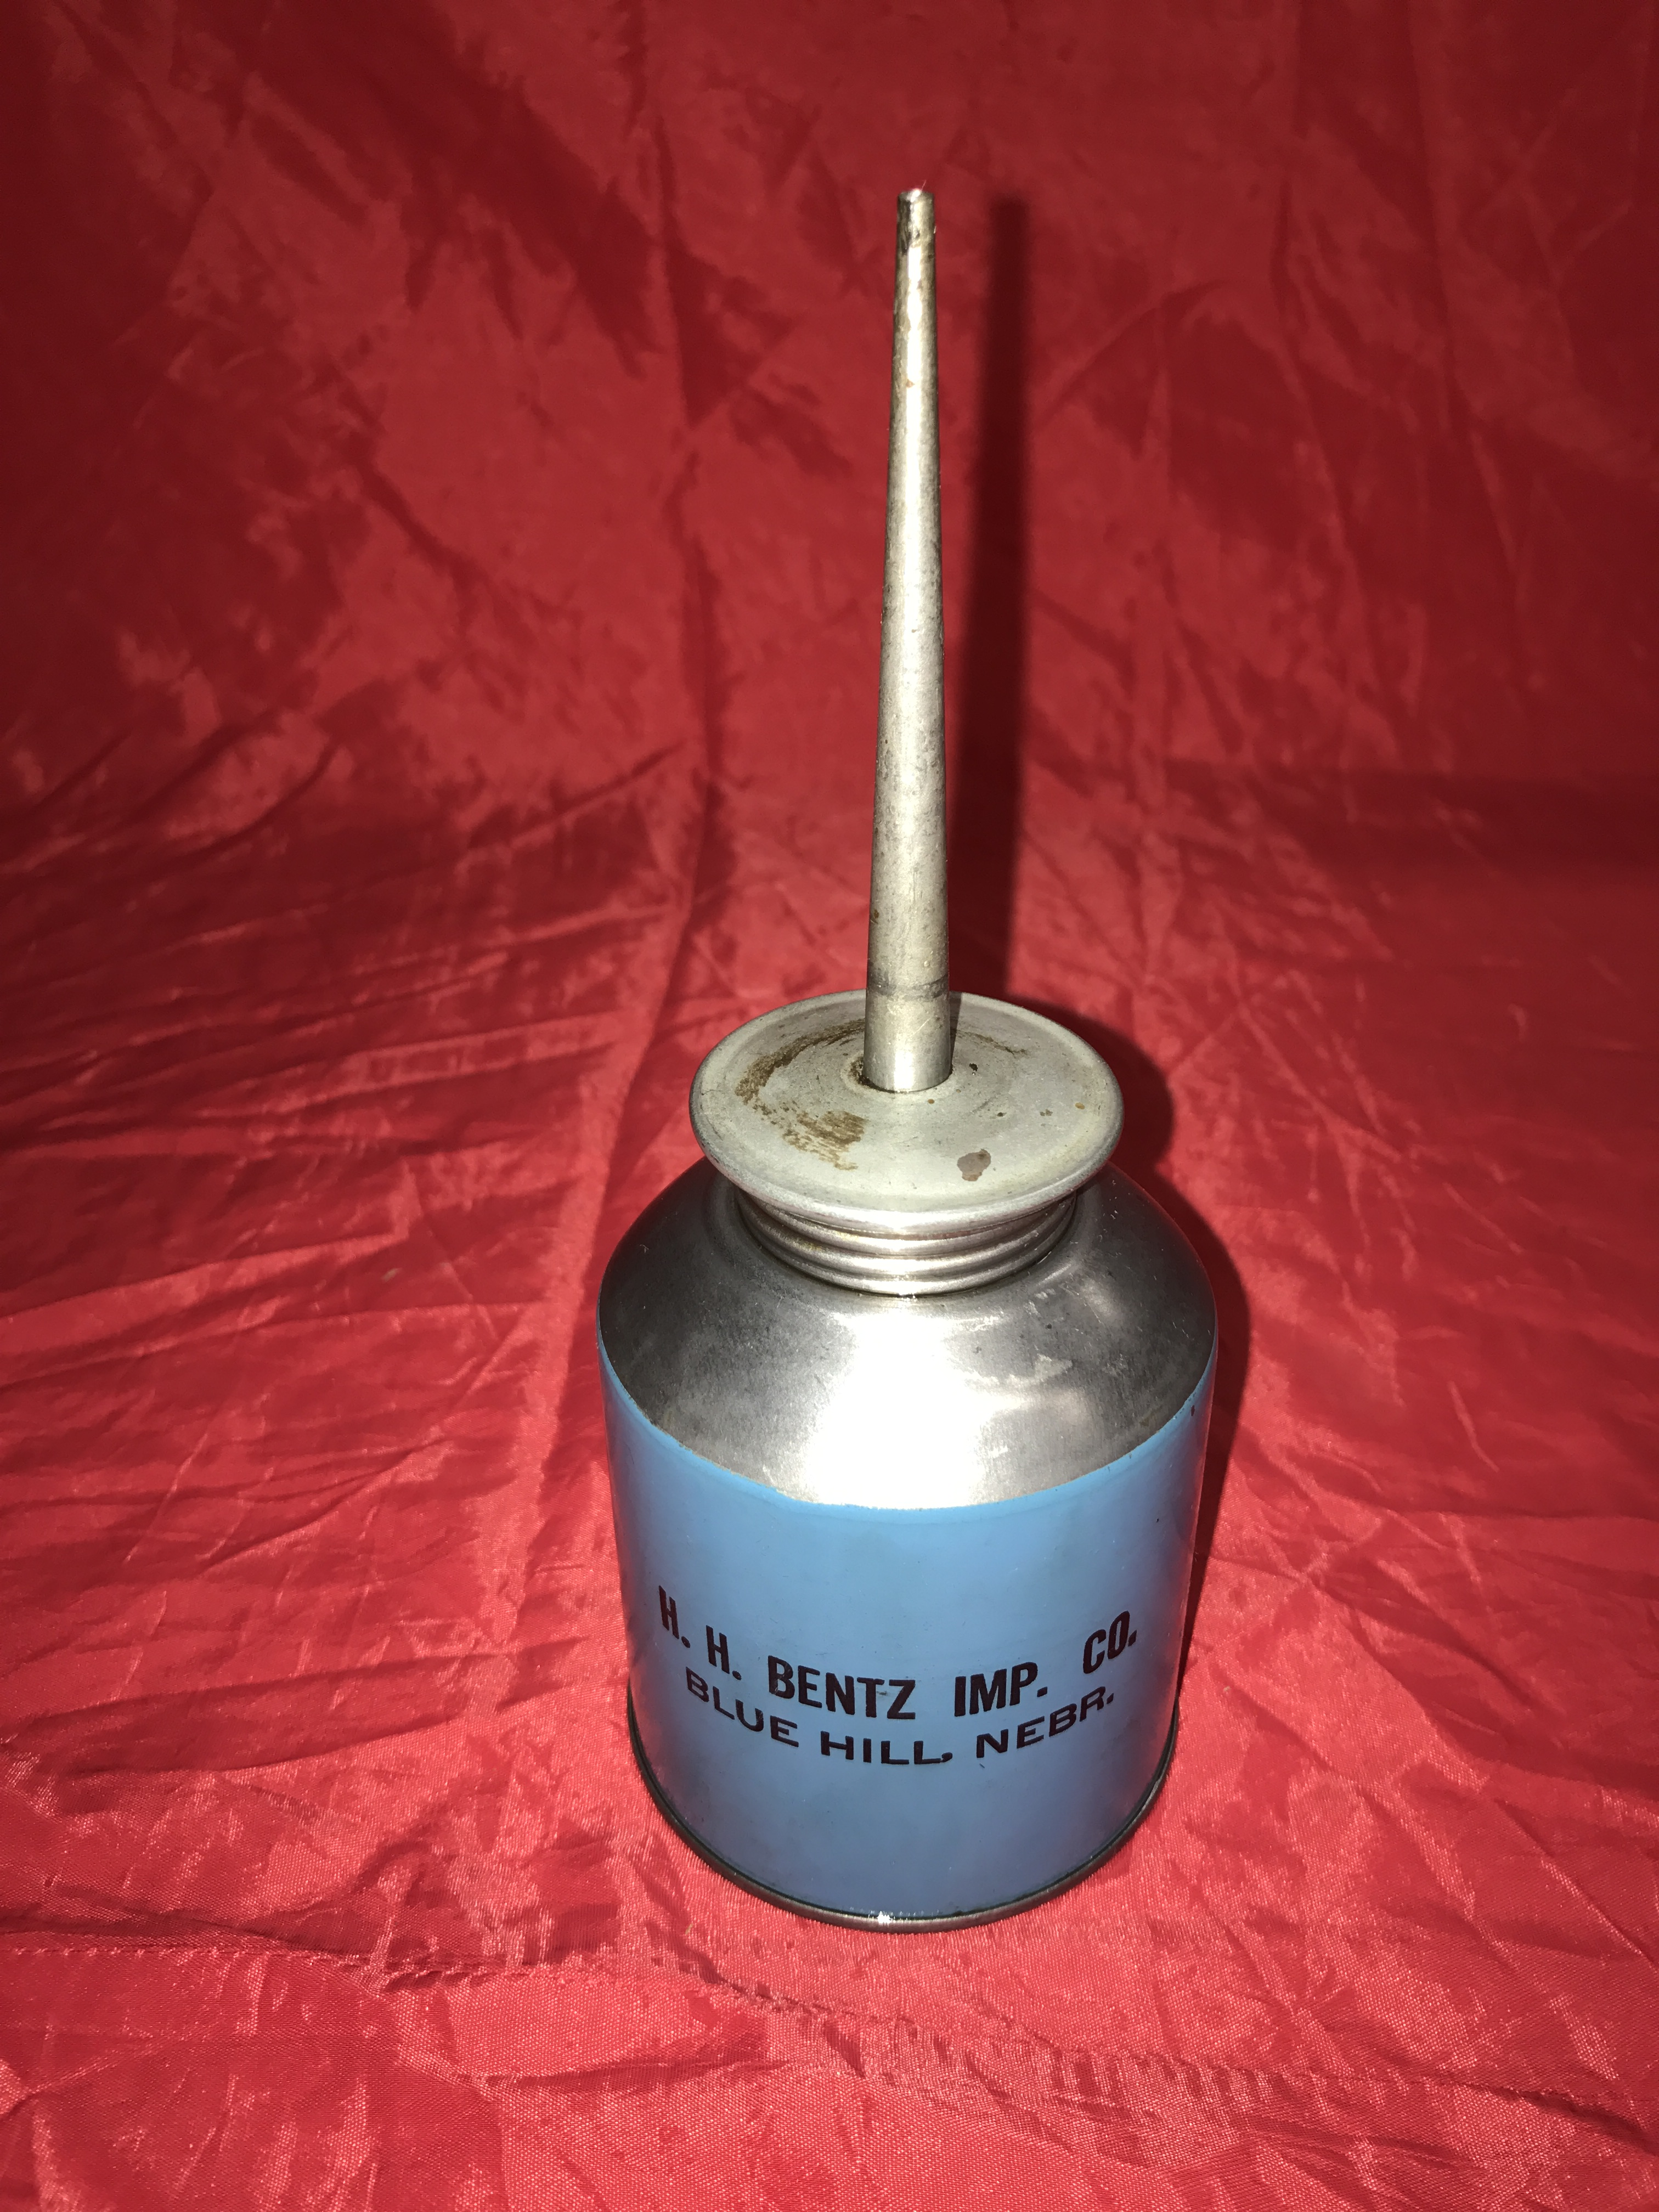 Lot 13 - McCormick Deering Oil Can H.H.Bentz Imp. Co.Blue Hill NE